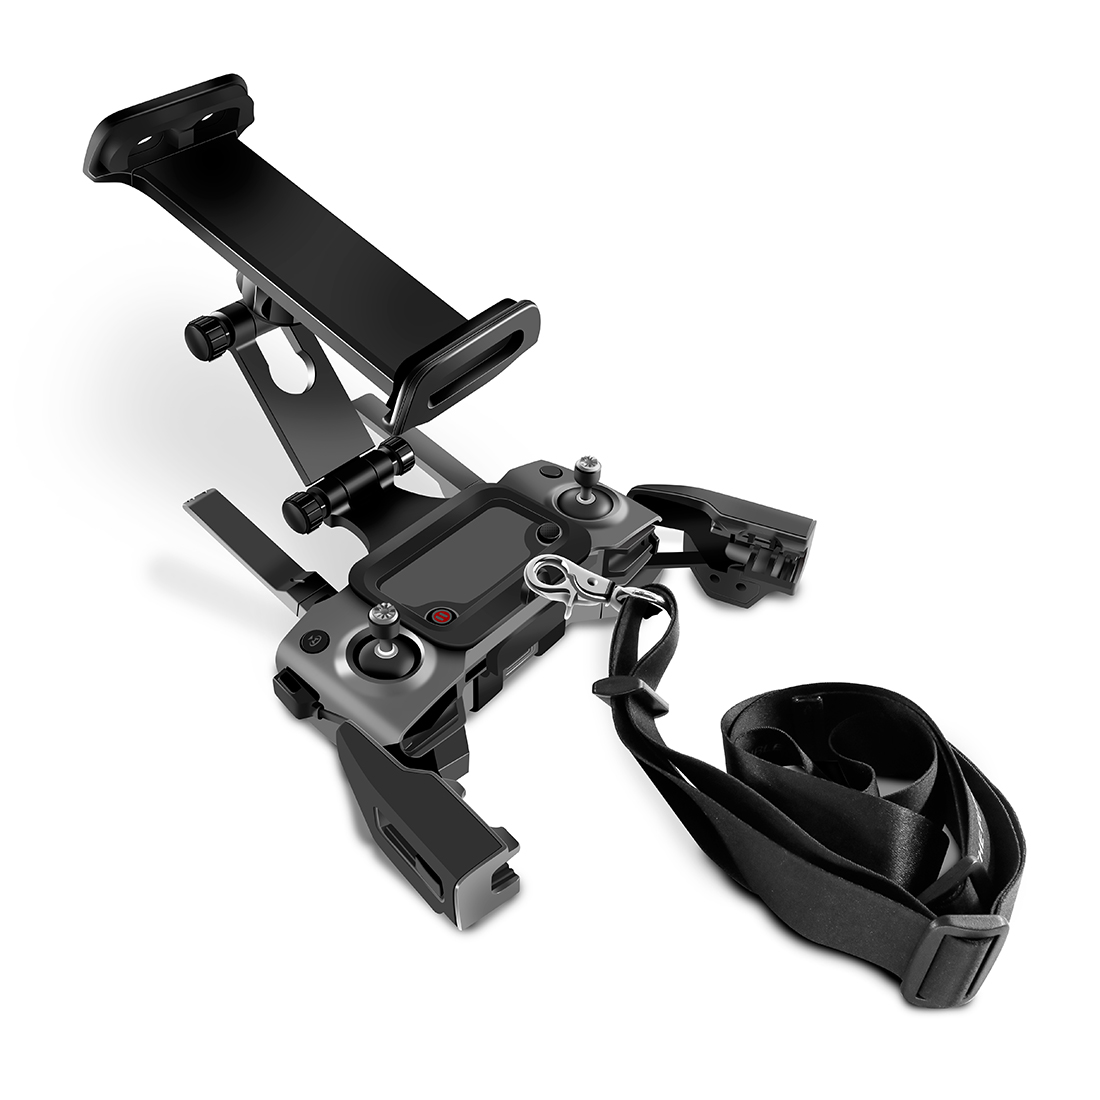 Mavic Mini Drone Remote Control Holder Bracket Phone Tablet Front Bracket Holder for DJI Mavic Air 2 1 Spark Mount Clip for Pad